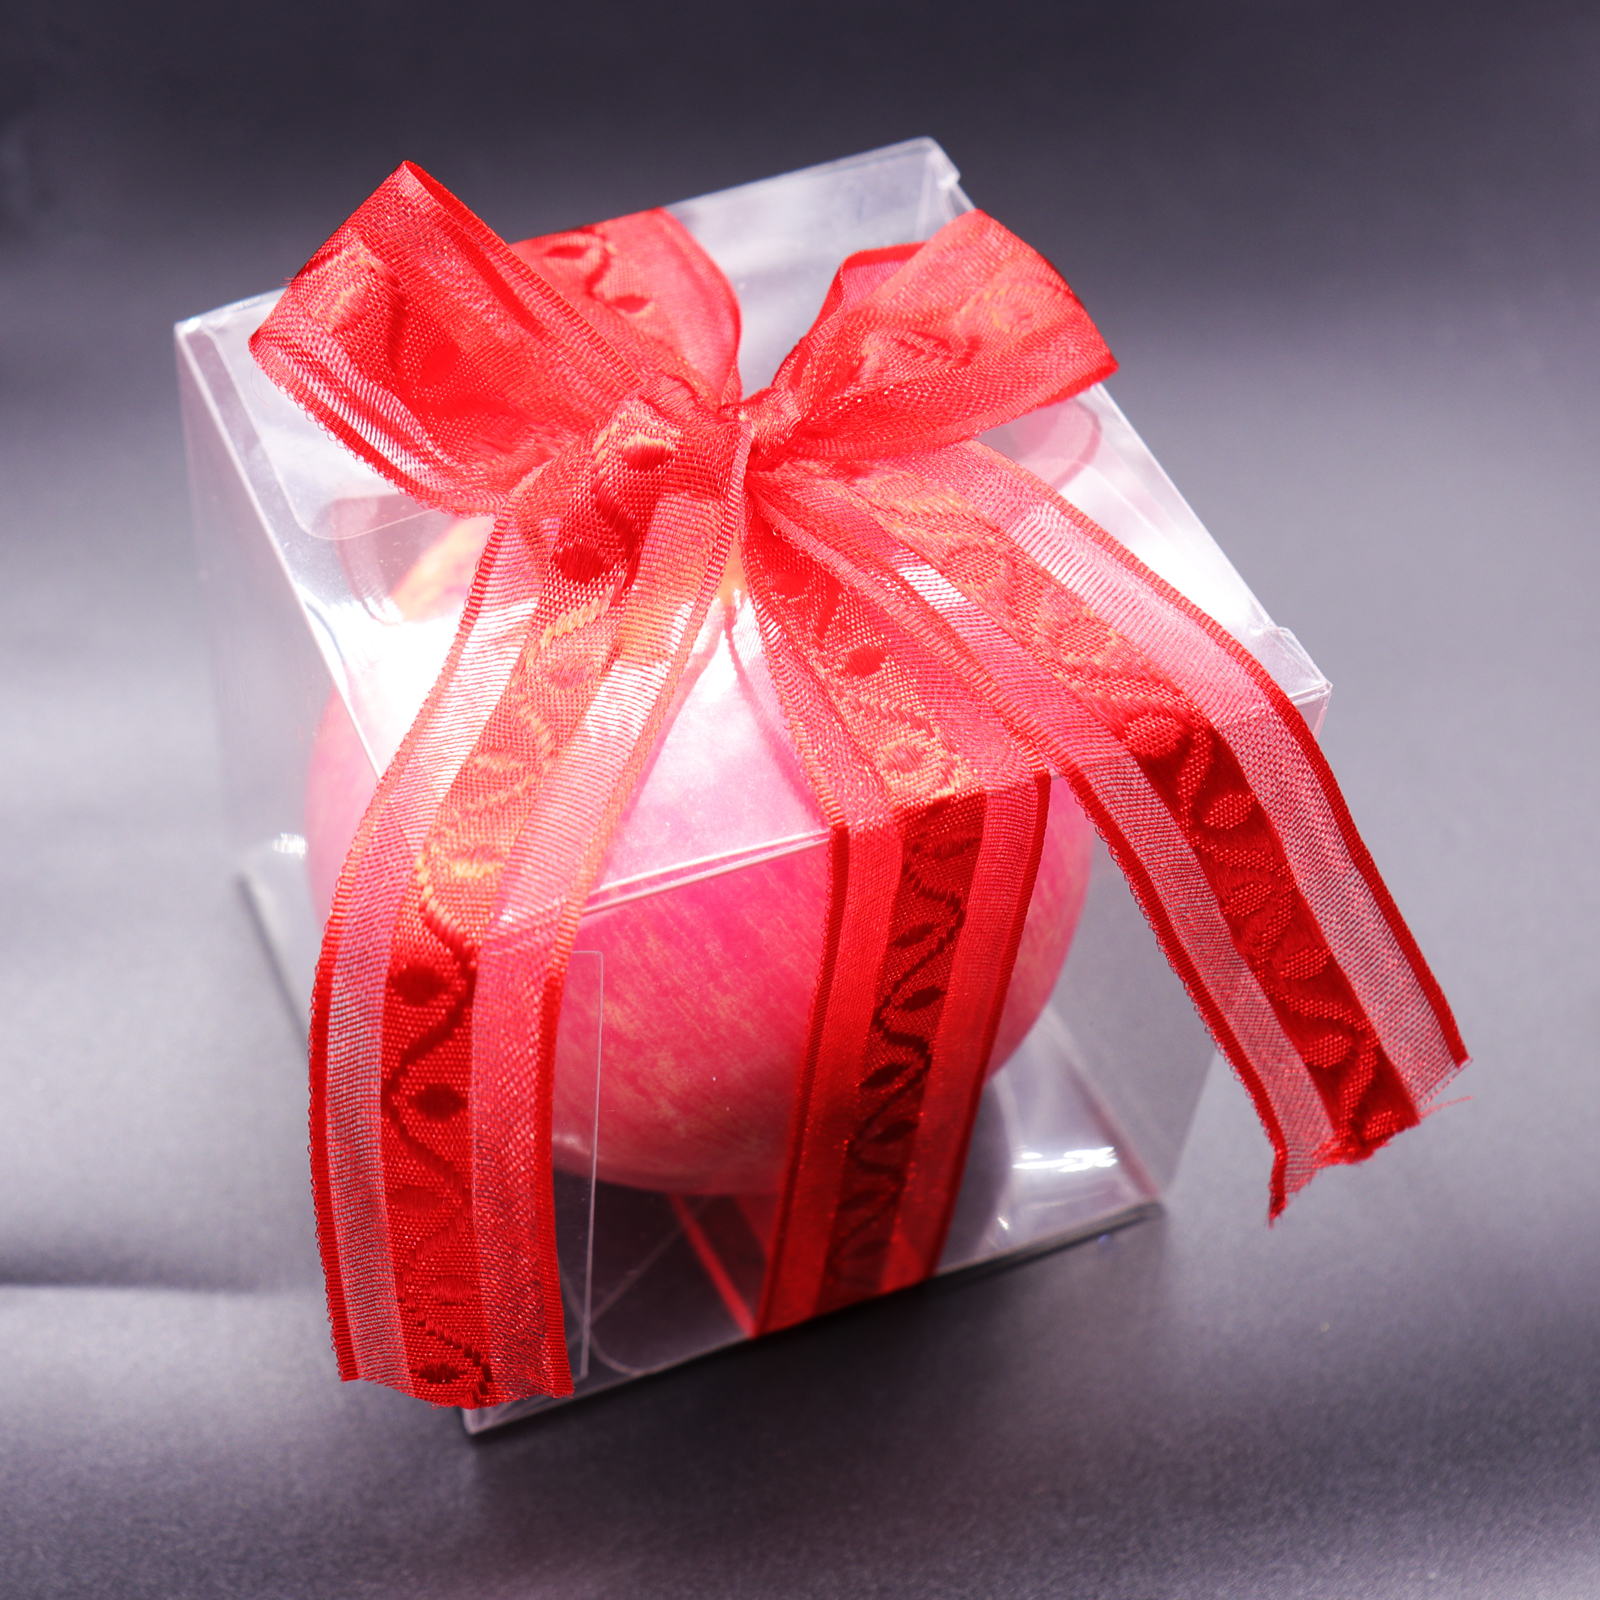 30 RED PARTY FAVOR TREAT BOXES BAG GREAT FOR BIRTHDAYS WEDDING BABY SHOWER